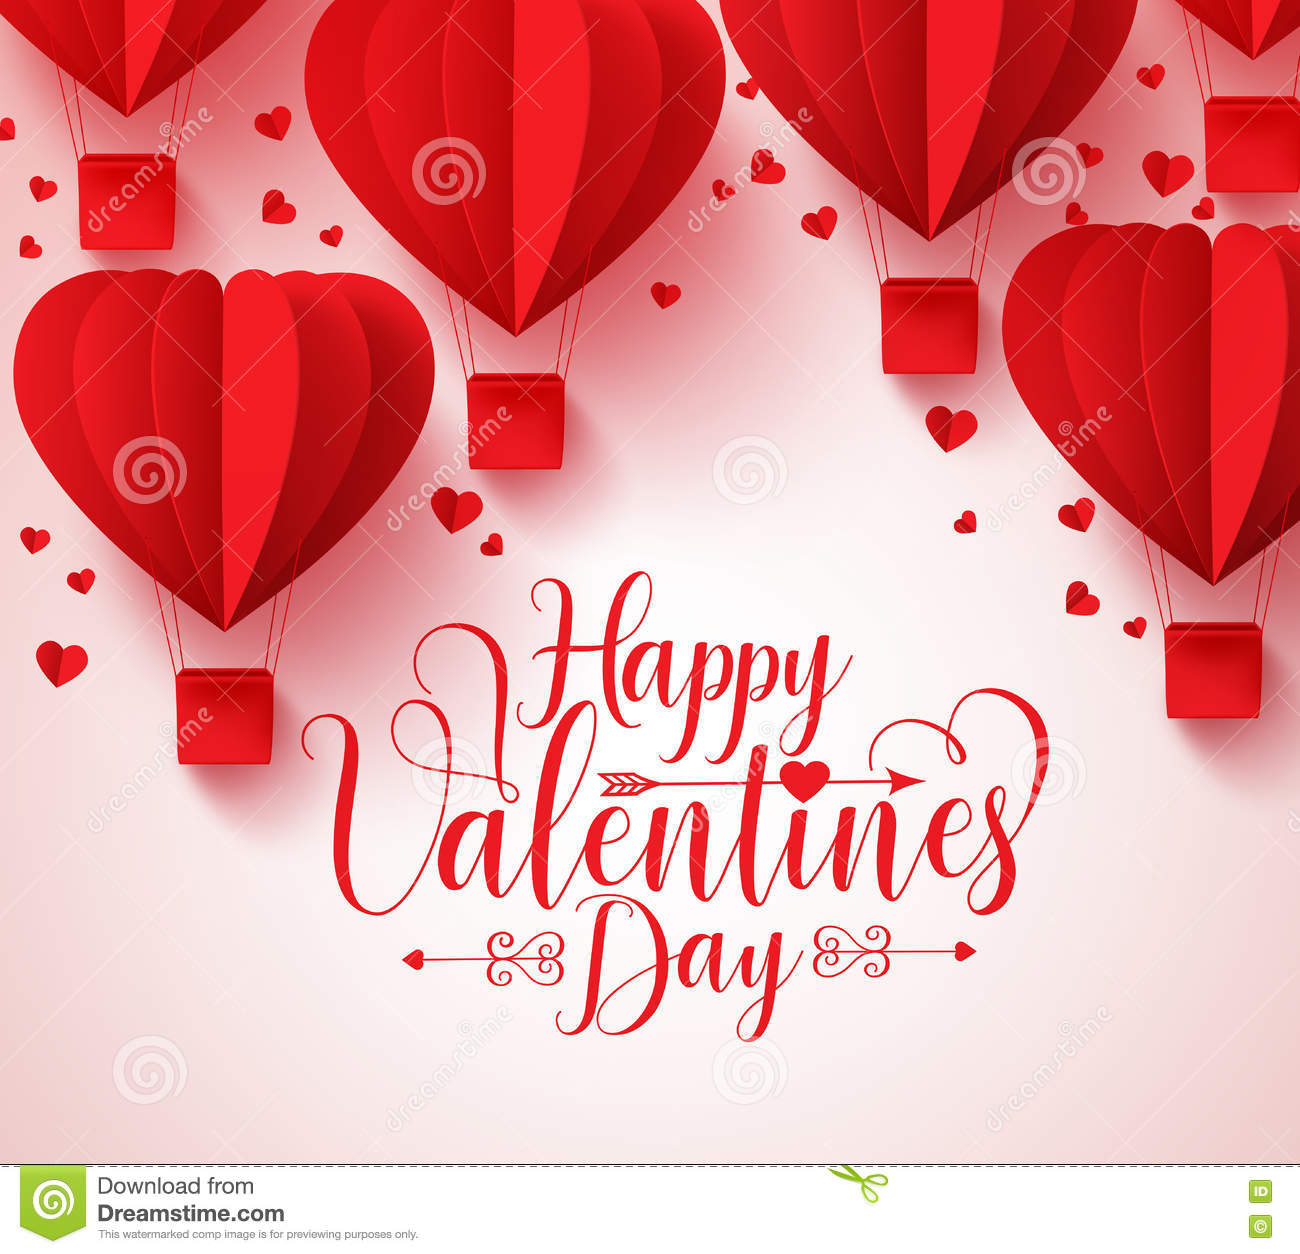 Happy Valentines Day Vector Greetings Card Design With Paper Cut Red